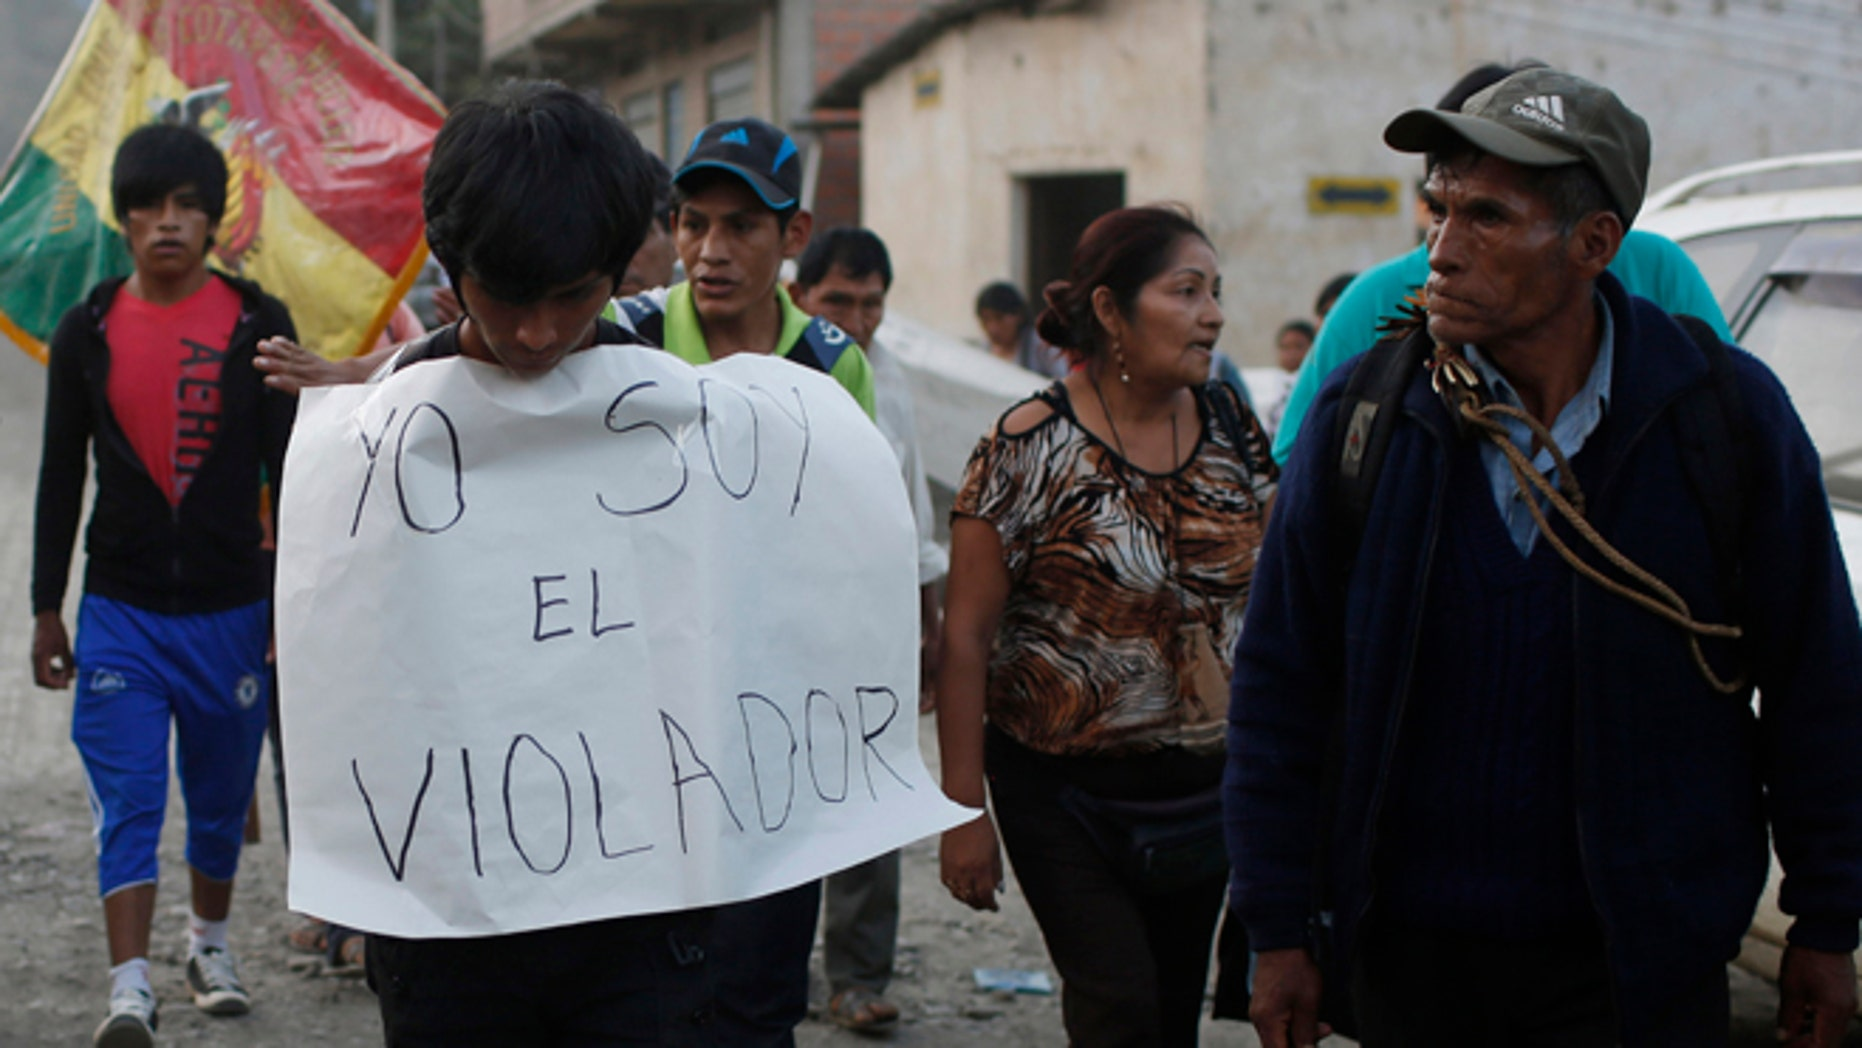 "In this June 6, 2015 photo, a man is made to wear a sign with a handwritten message that reads in Spanish; ""I'm the rapist,"" as he is paraded through La Asunta, northeast of La Paz, Bolivia. Groups of citizens patrol the town of 7,000 people, who have imposed a sort of vigilante dry law in the coca-growing mountain town,  hoping to end a series of rapes and other crimes. In recent months an 11-year-old girl, and 12-year old girl have been victims of rape in La Asunta, according to local officials. (AP Photo/Juan Karita)"